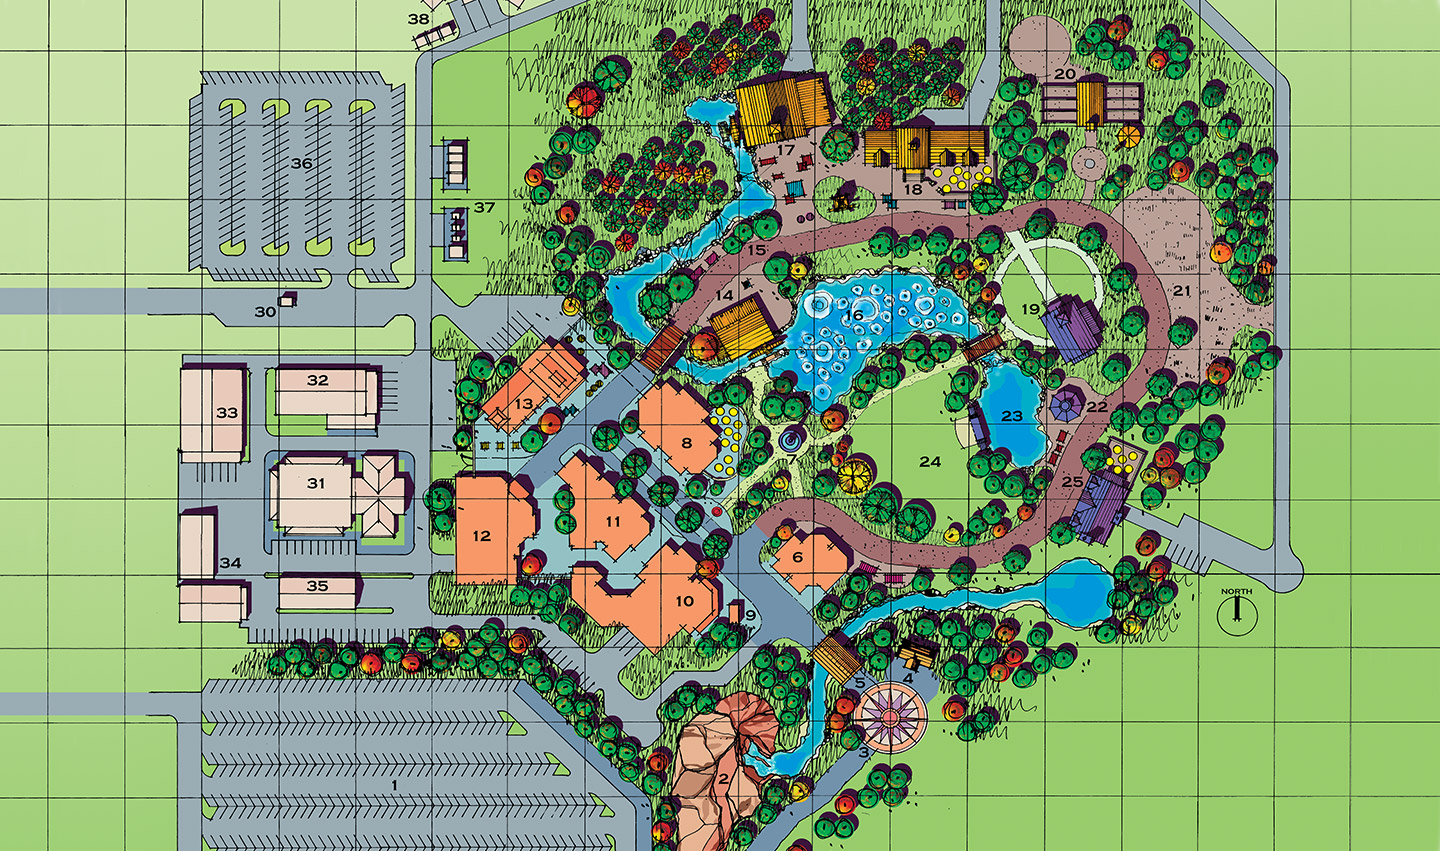 Family Entertainment Park - Master Plan